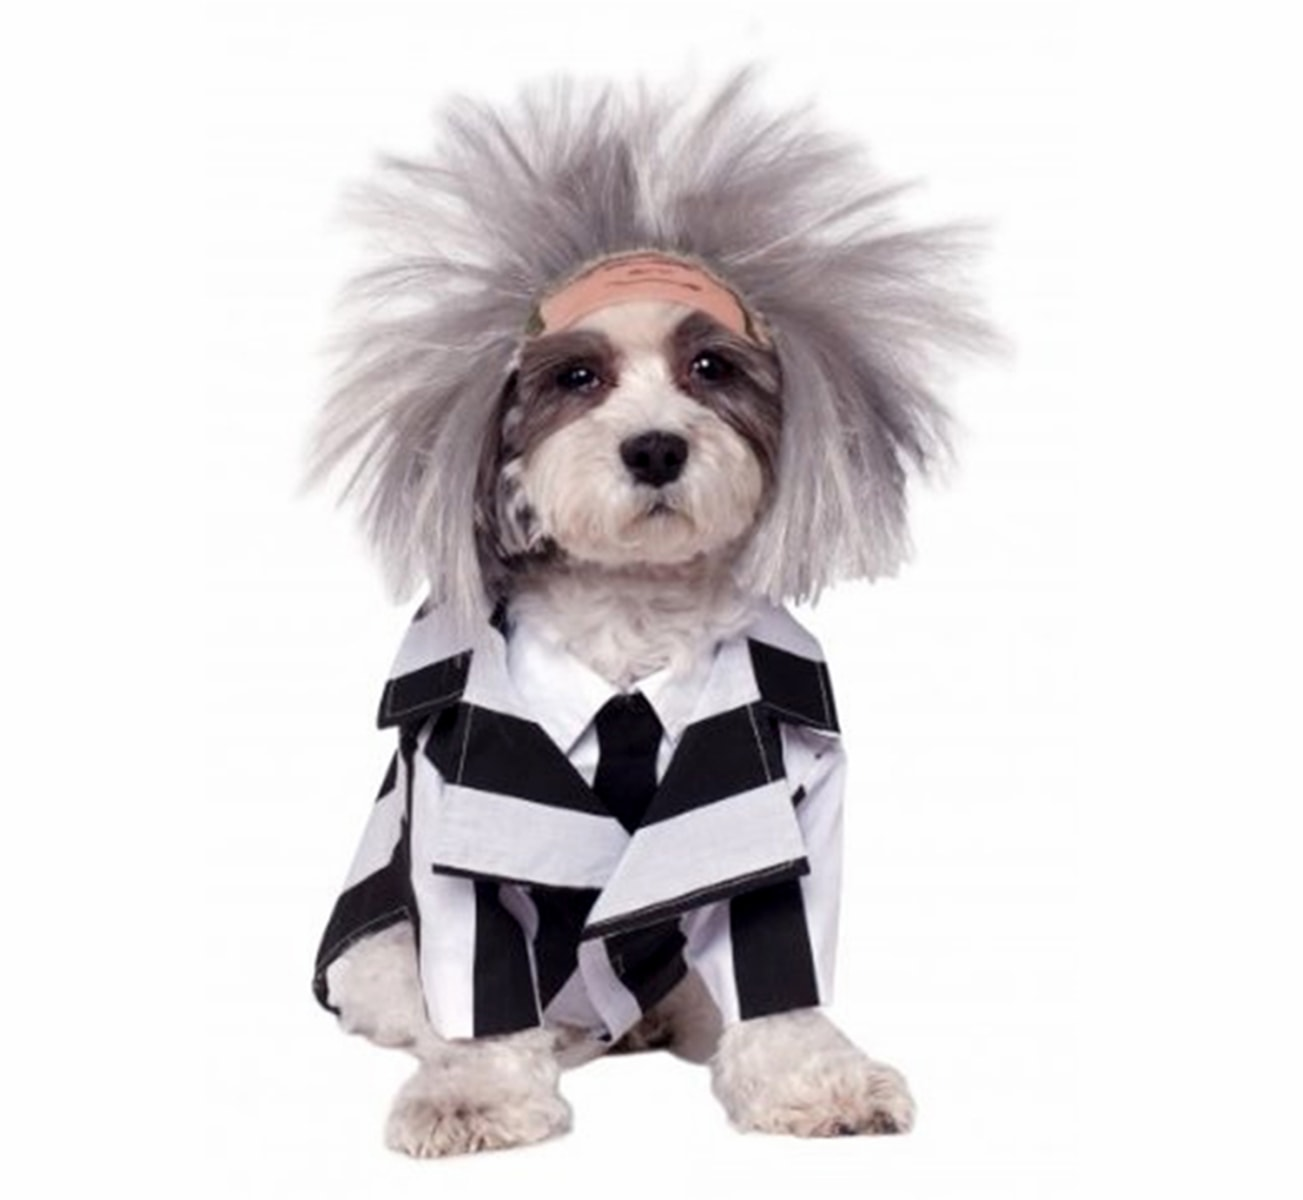 Halloween Costumes For Dogs Amazon